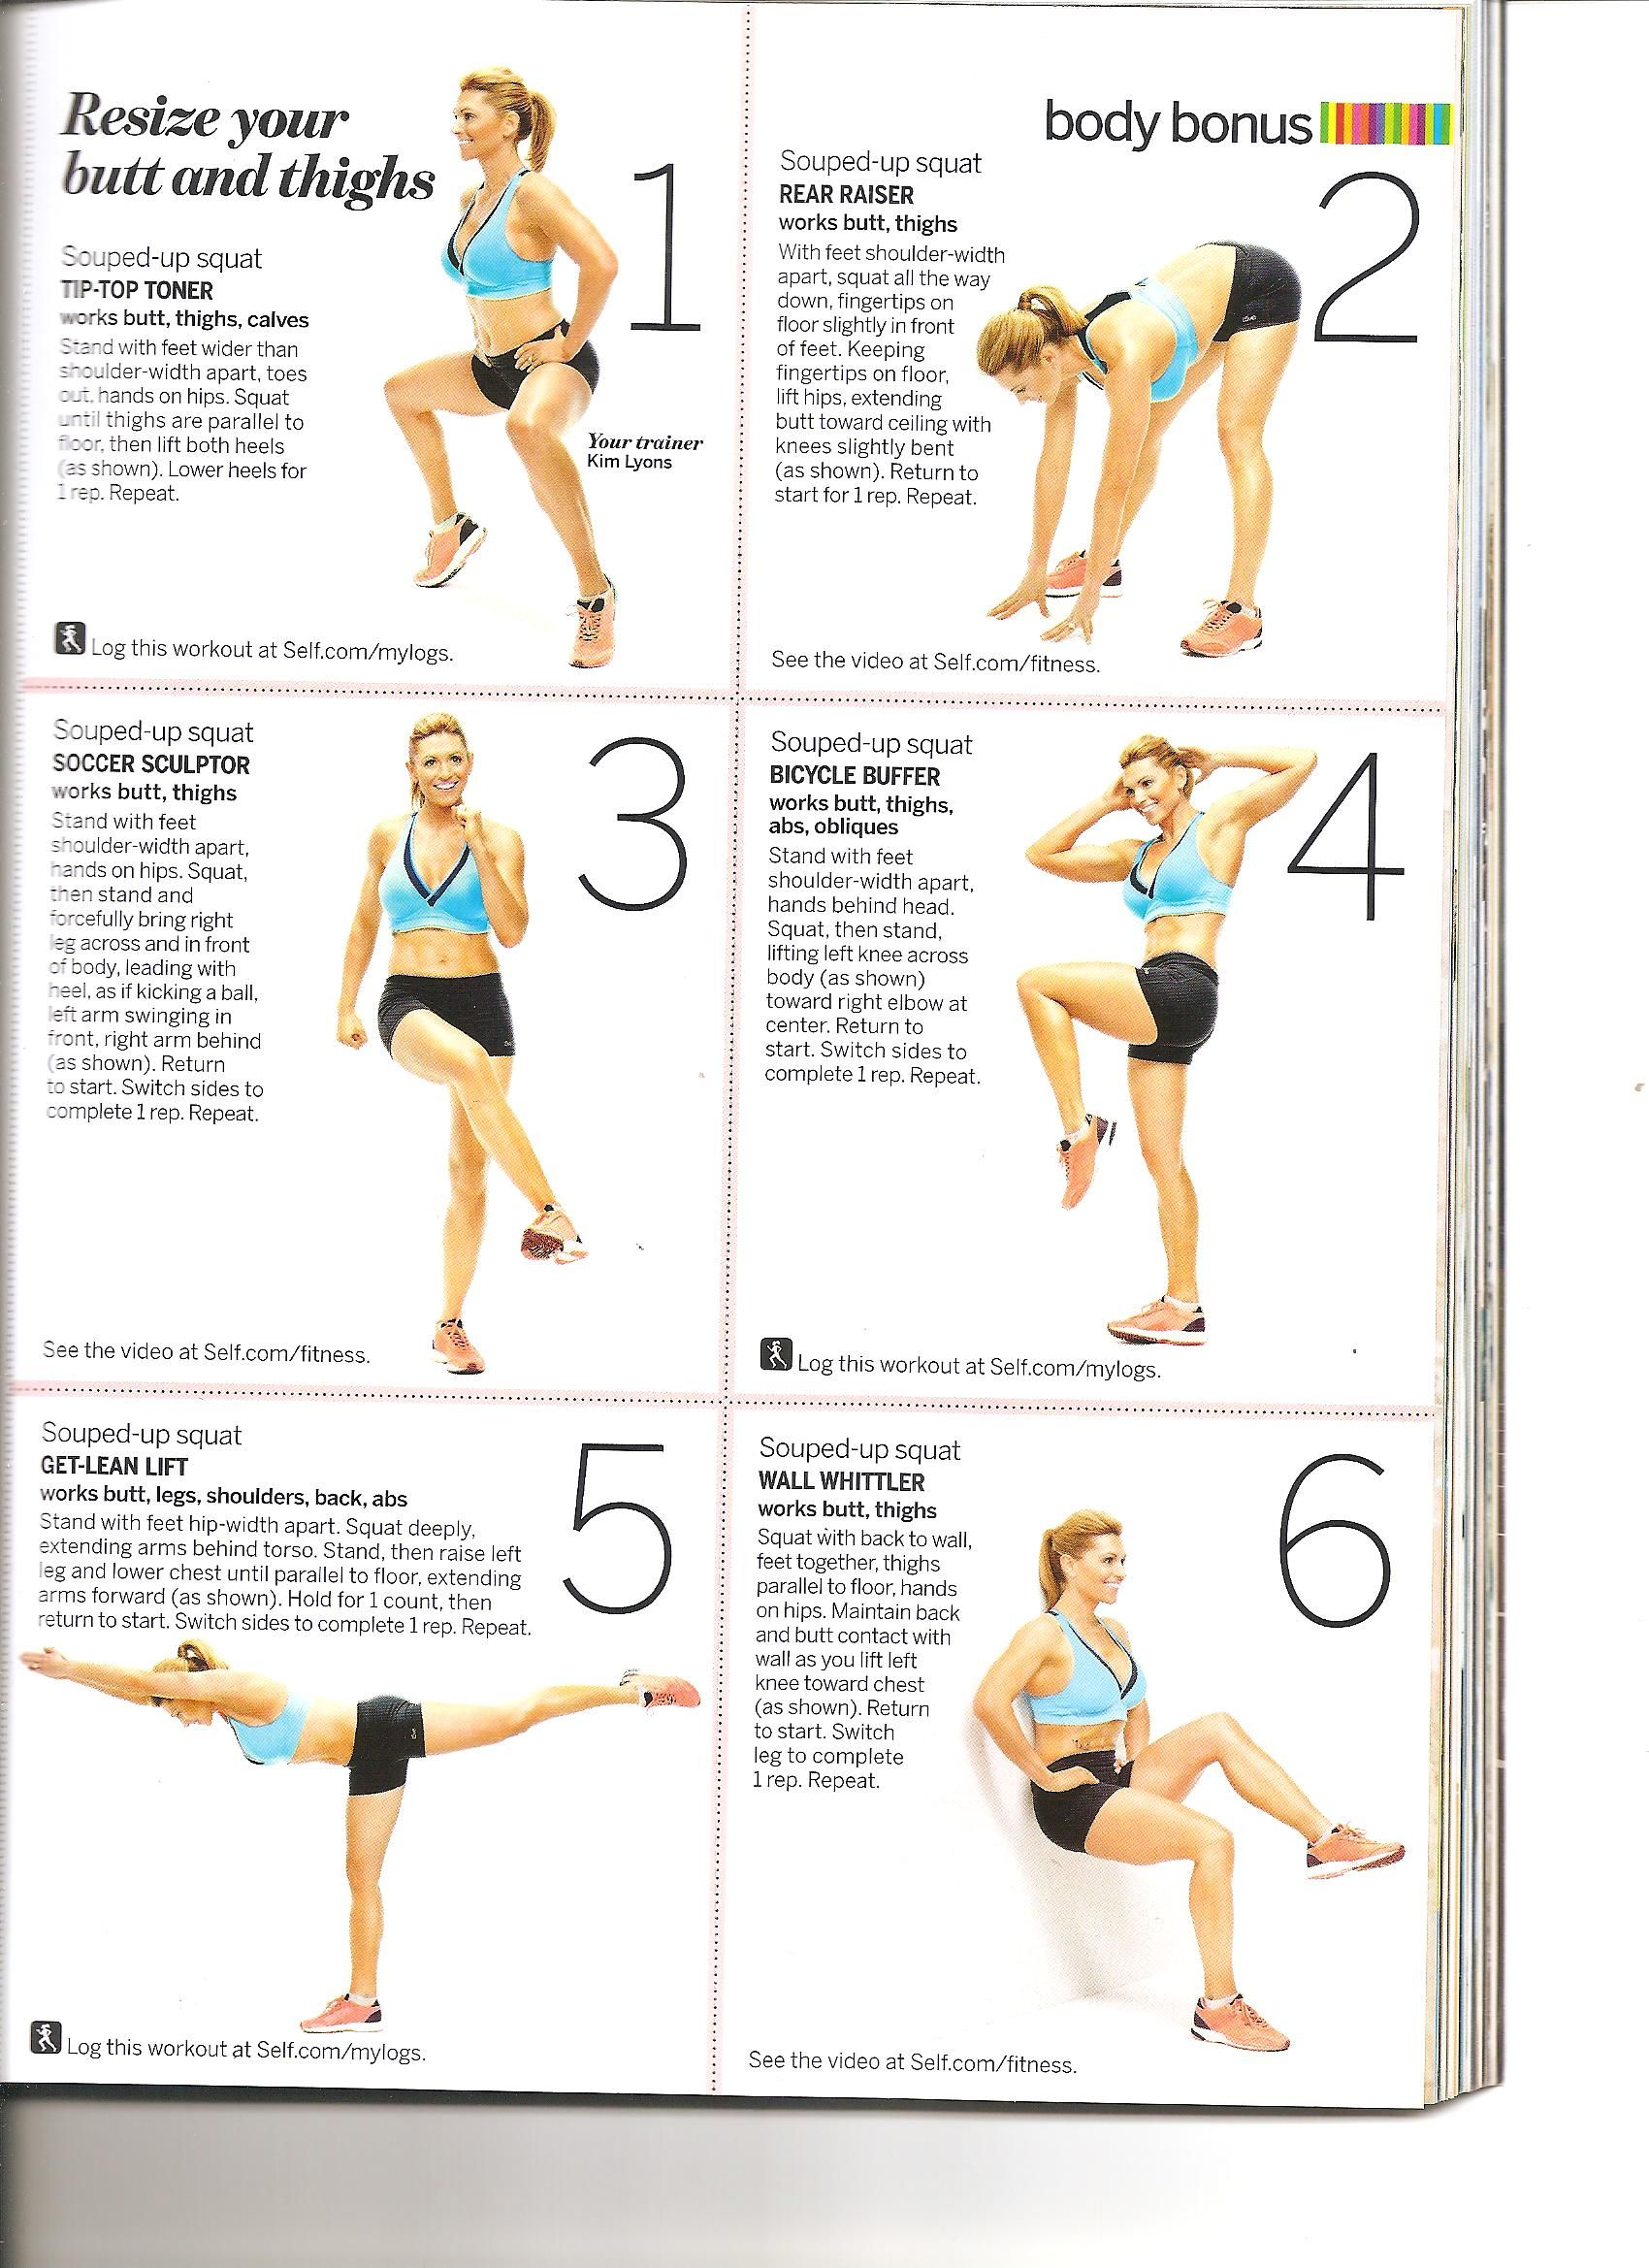 This Butt and Thighs workout left me shaking! i did a minute of each exercise